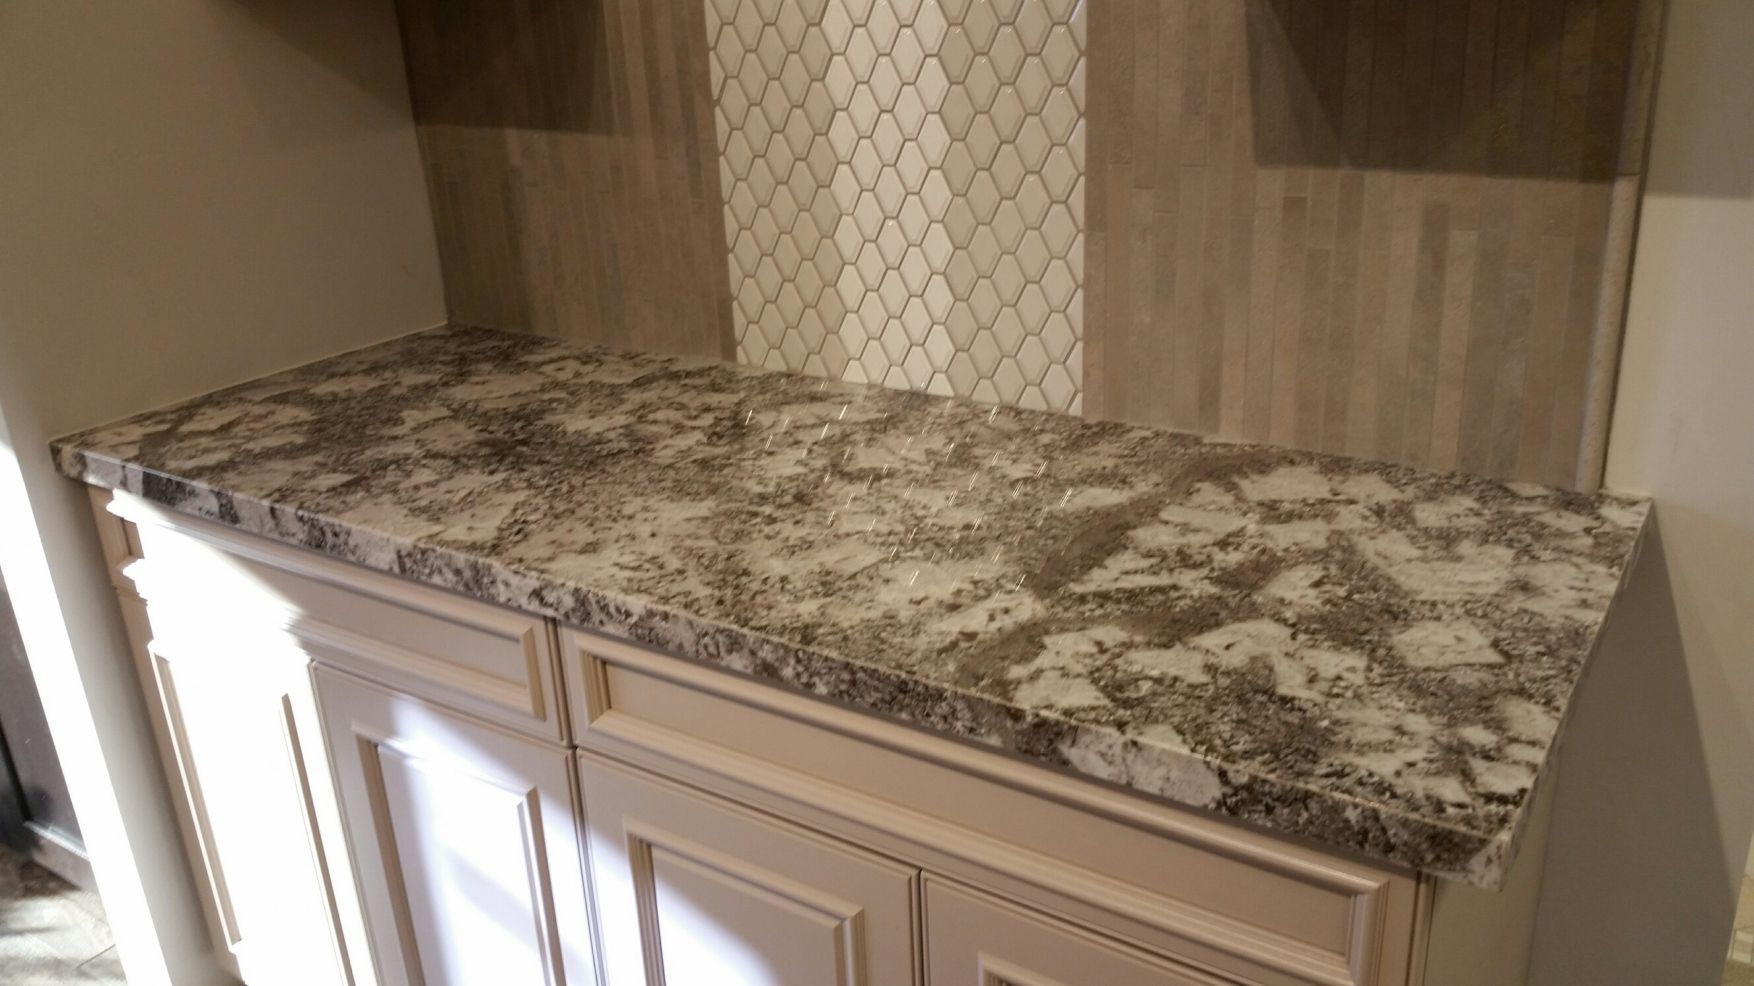 99+ Granite Countertops Las Vegas Nv   Small Kitchen Island Ideas With  Seating Check More